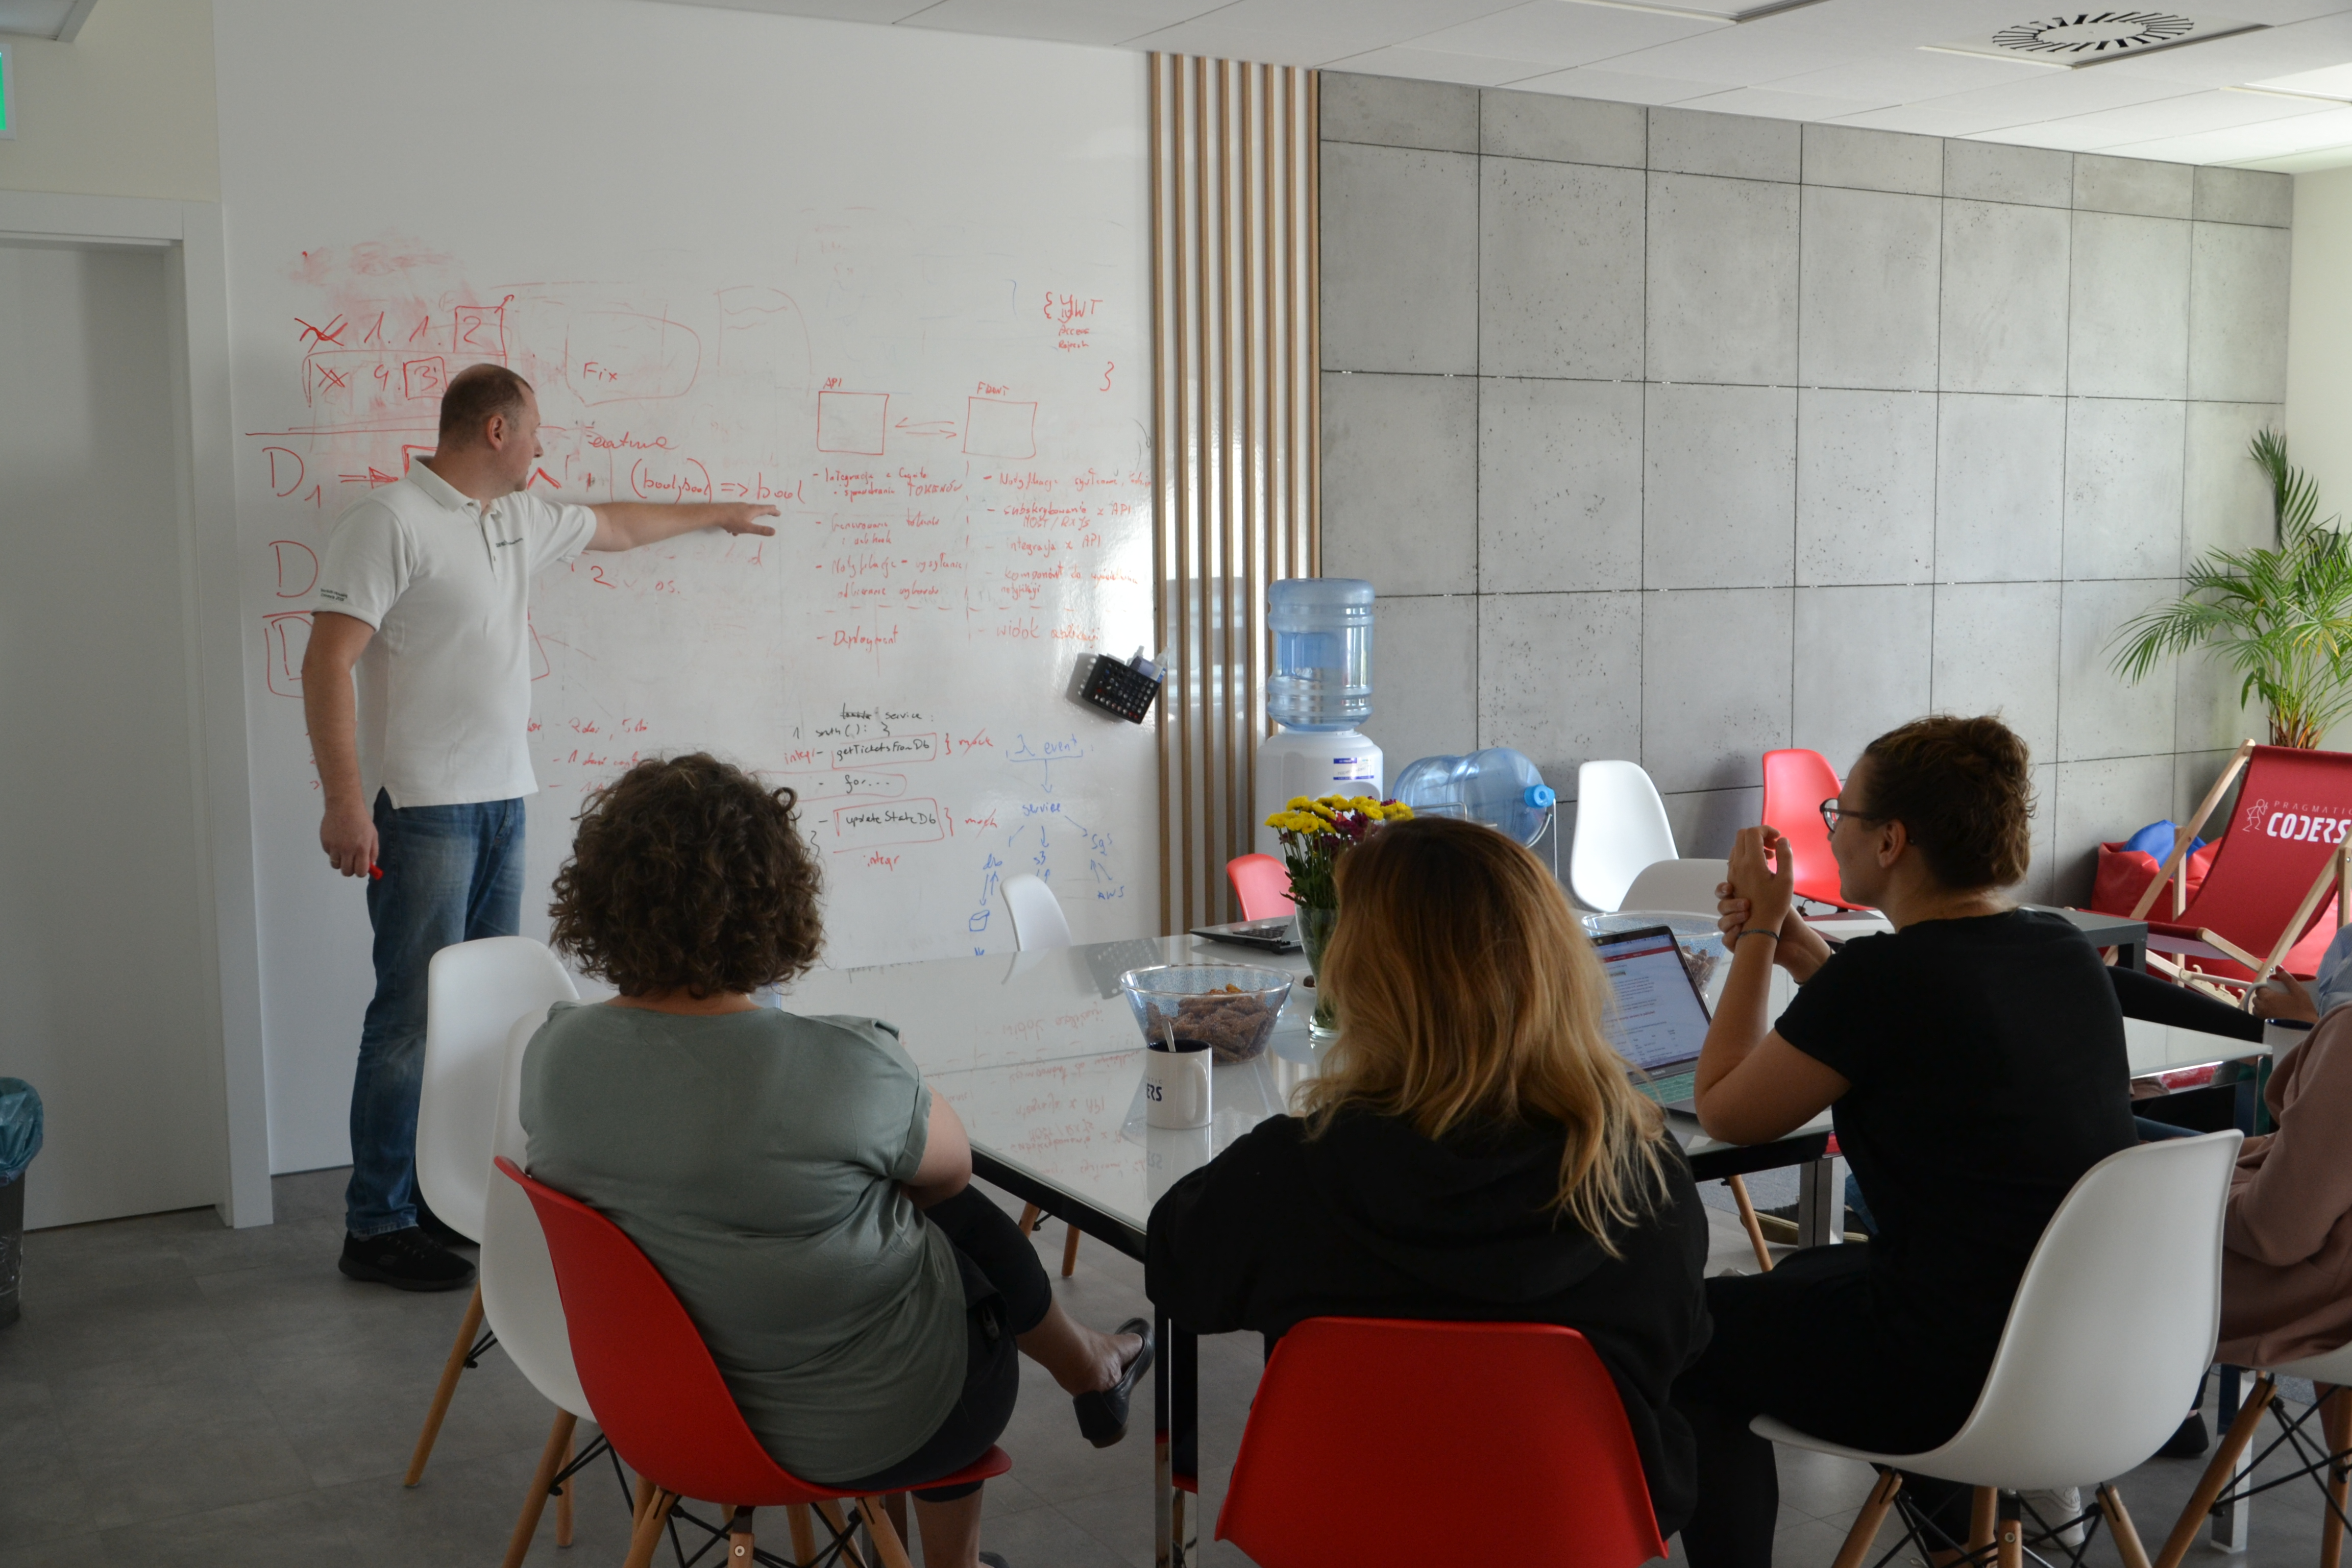 workshop to discover UVP